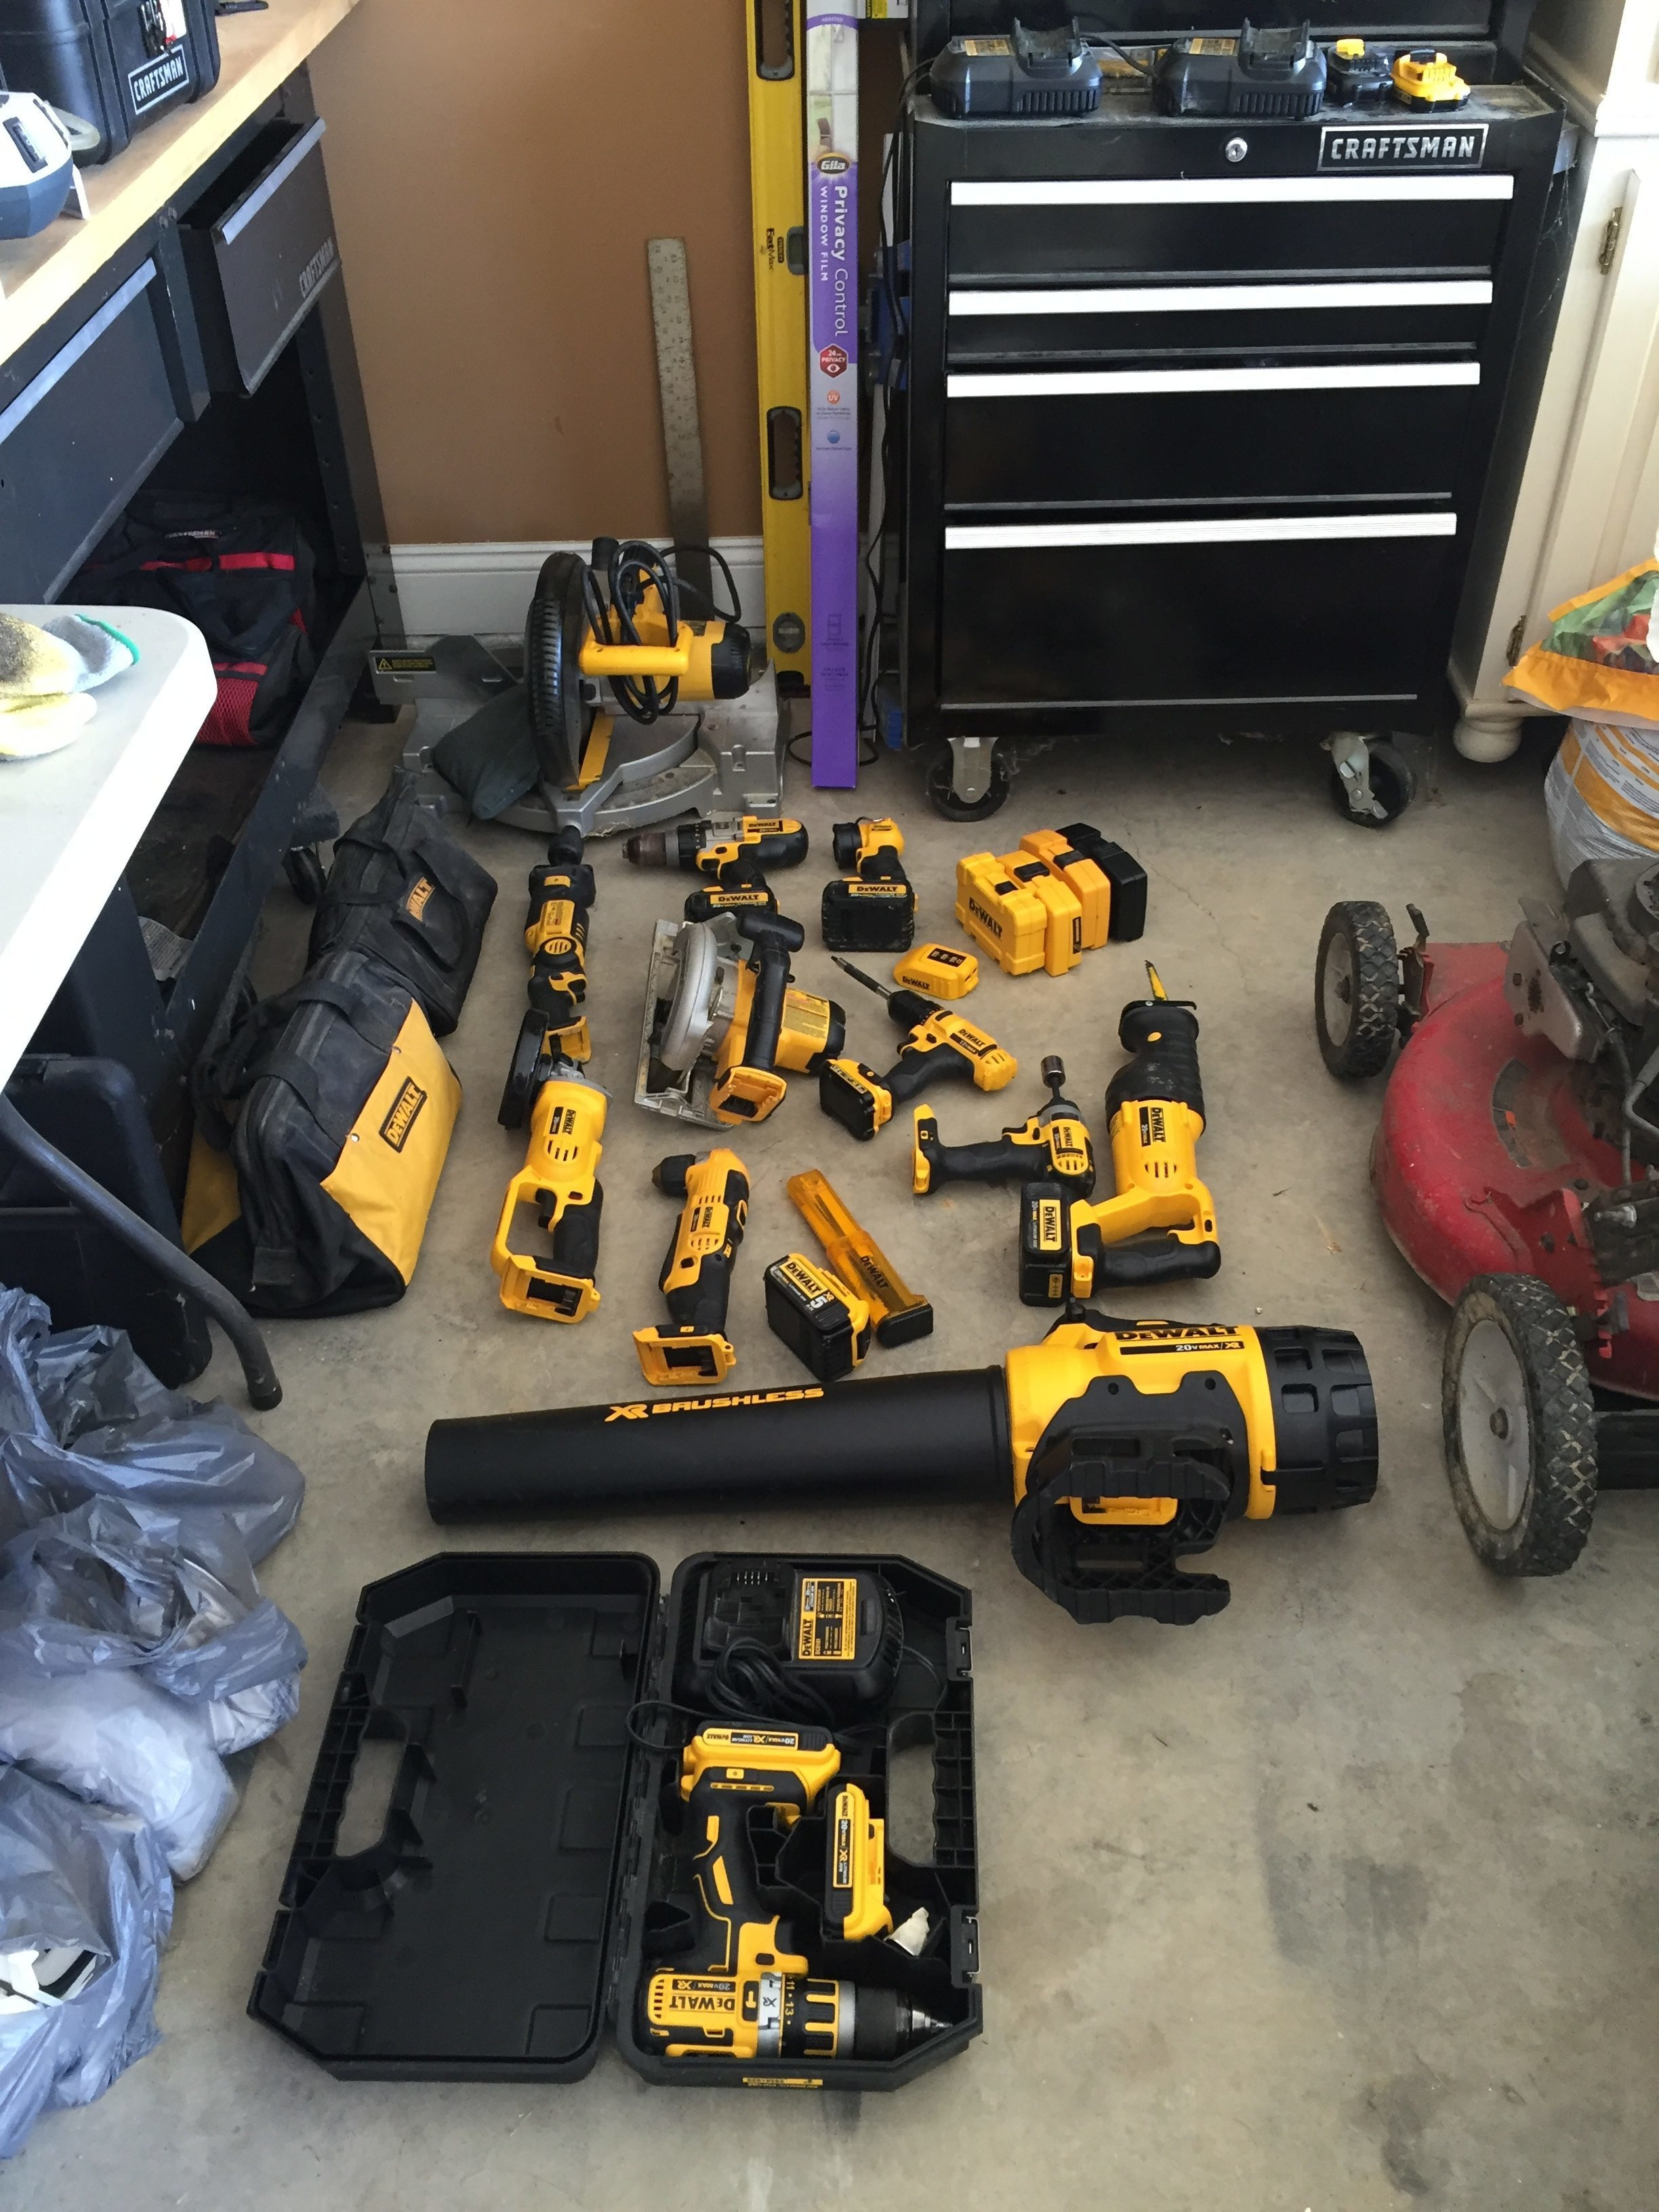 i have bought this d51238k dewalt brad nailer for various projects around my house i have owned it just over a year and have had minimal usage on it